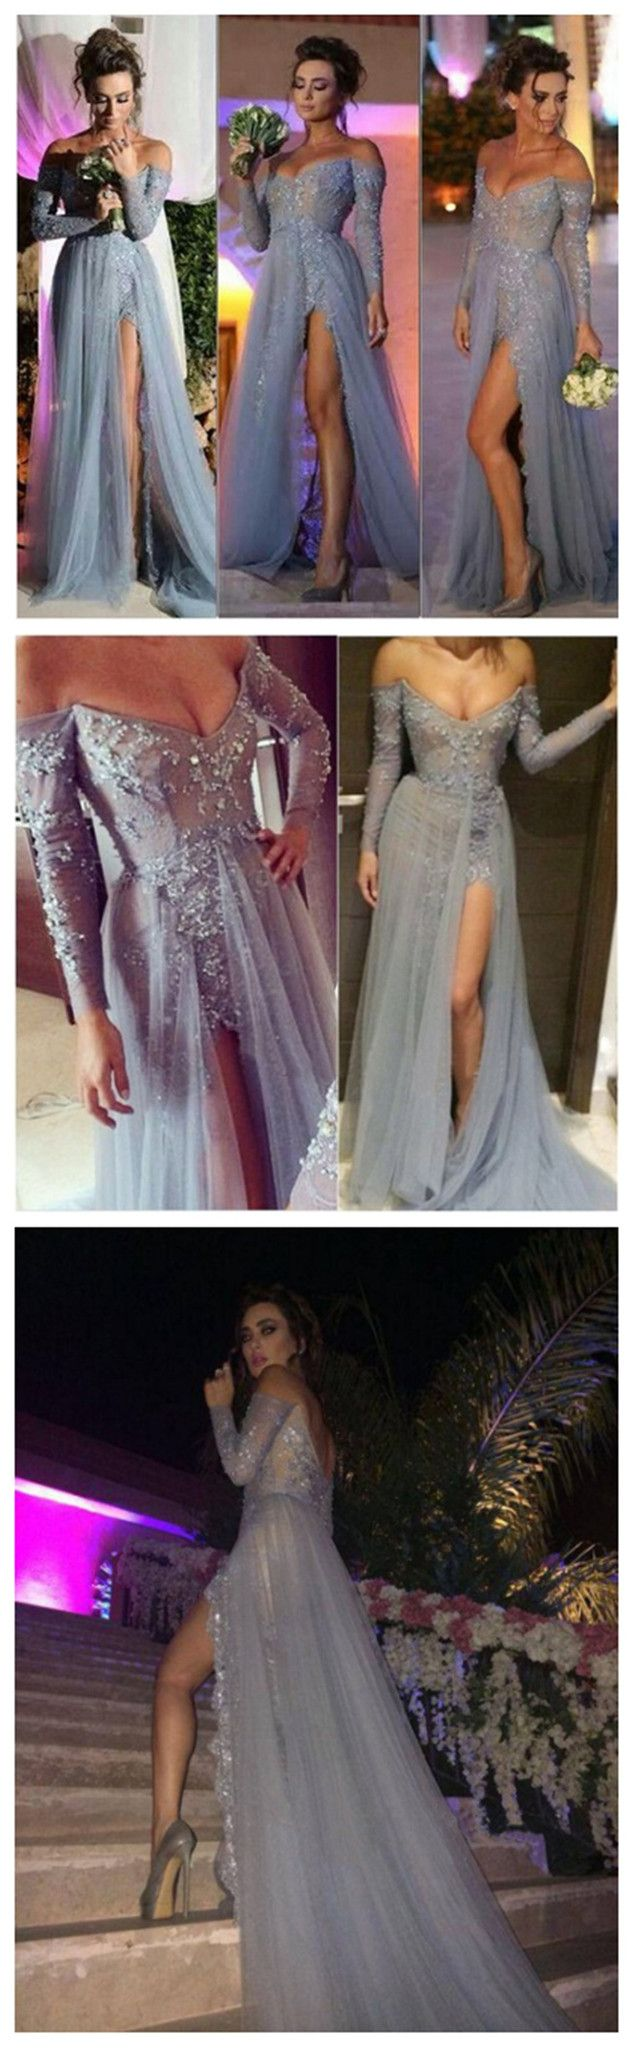 Long Gray Lace Off Shoulder V-neck Side Slit Sexy Popular Prom Dresses ,Evening Occasion Dresses, PD0021 The dress is fully lined, 4 bones in the bodice, chest pad in the bust, lace up back or zipper back are all available, total 126 colors are available. This dress could be custom made, there are no extra cost to do custom size and color. Description of dress 1, Material : tulle, lace, elastic silk like satin. 2, Color: picture color or other colors, there are 126 colors are available, ...